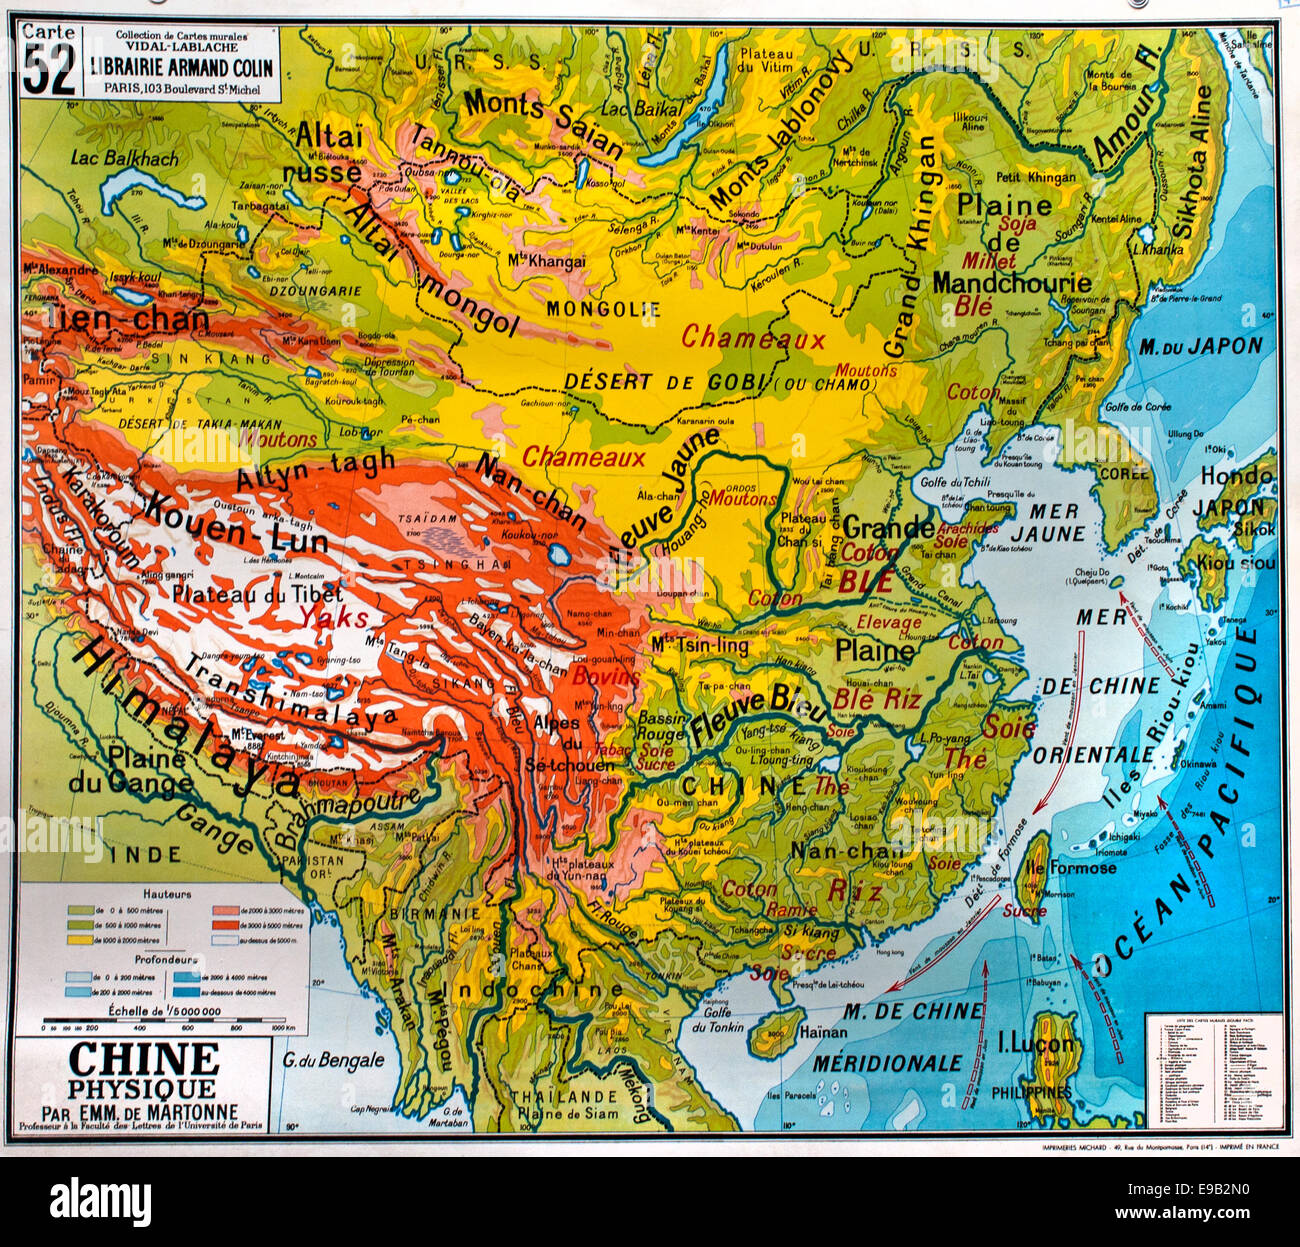 Old map china stock photos old map china stock images alamy old school world wall map china himalaya french cartography stock image gumiabroncs Gallery